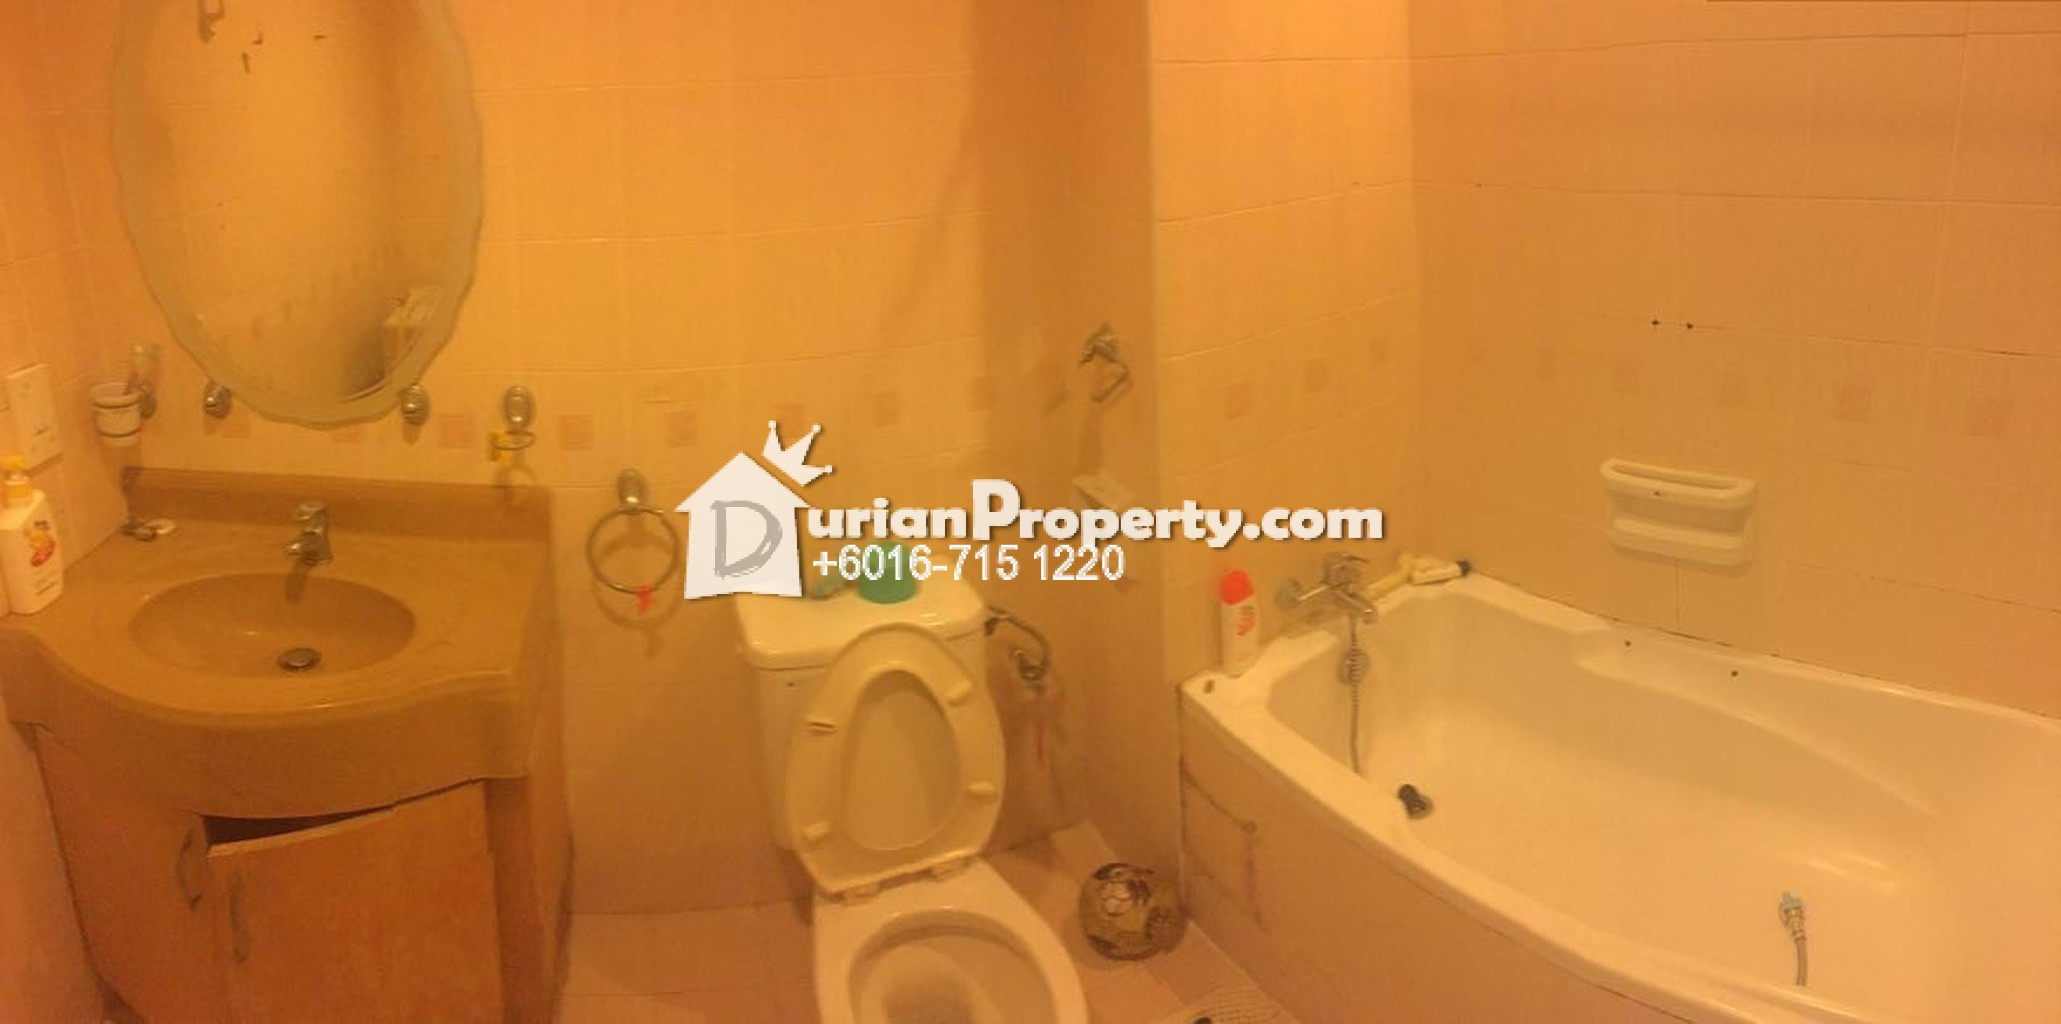 Bathroom Accessories Johor townhouse for sale at polo park, johor bahru for rm 328,000teo